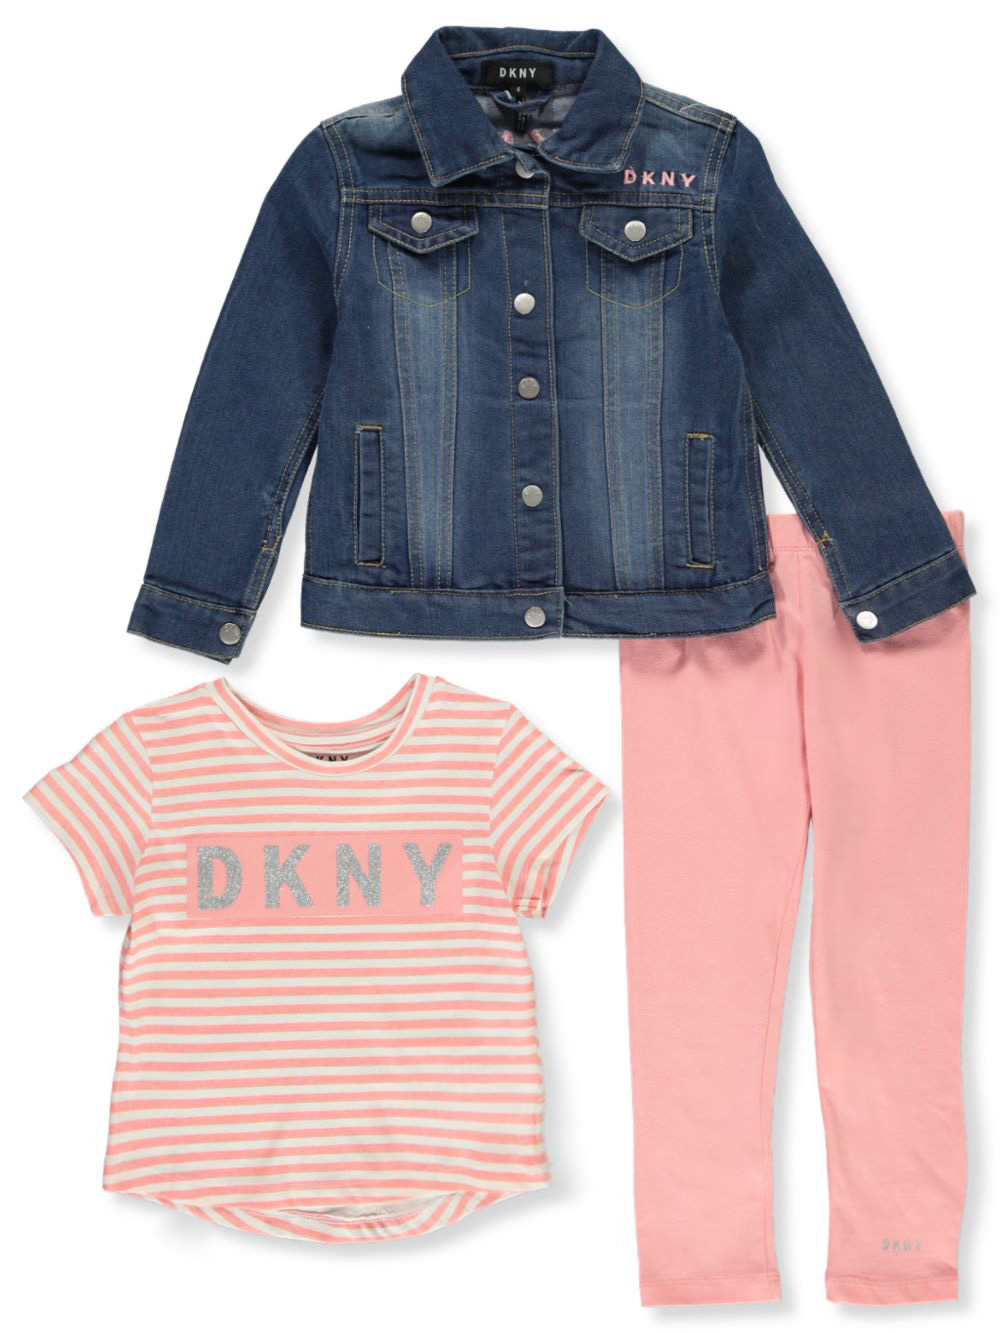 Girls' 3-Piece Leggings Set Outfit